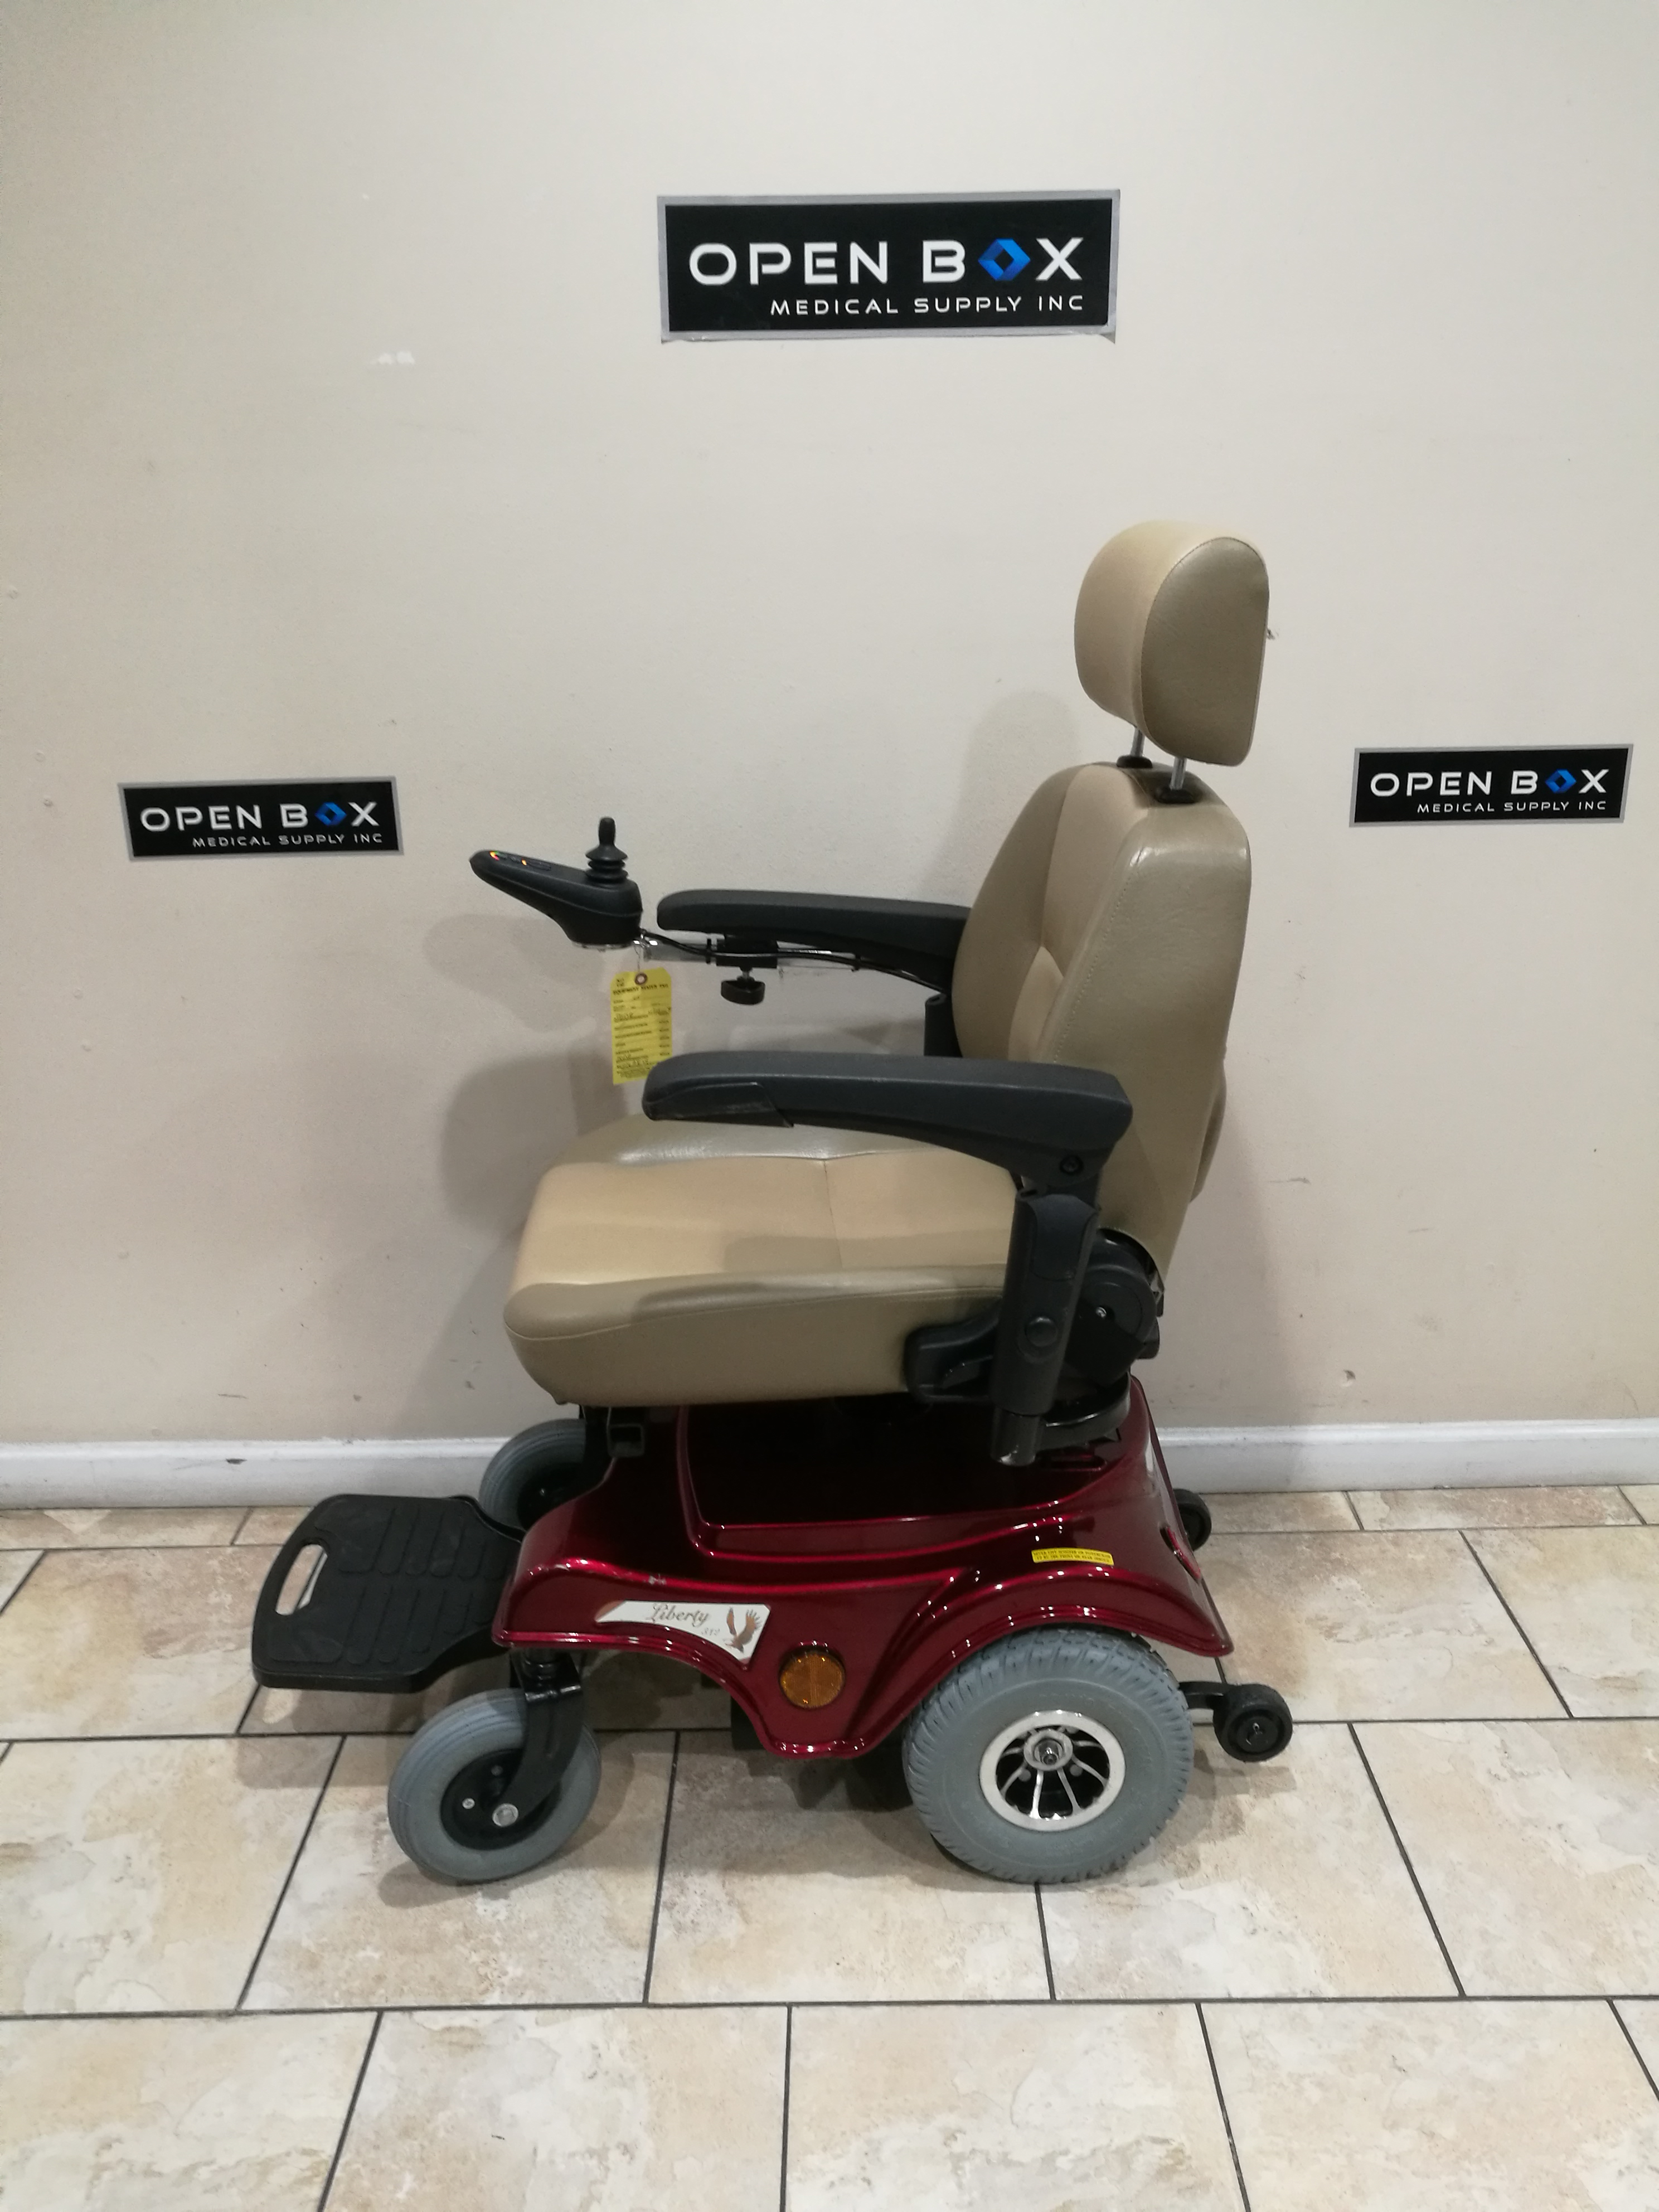 liberty 312 power chair battery hello kitty desk electric wheelchair www sham store used in la rh openboxmedical com